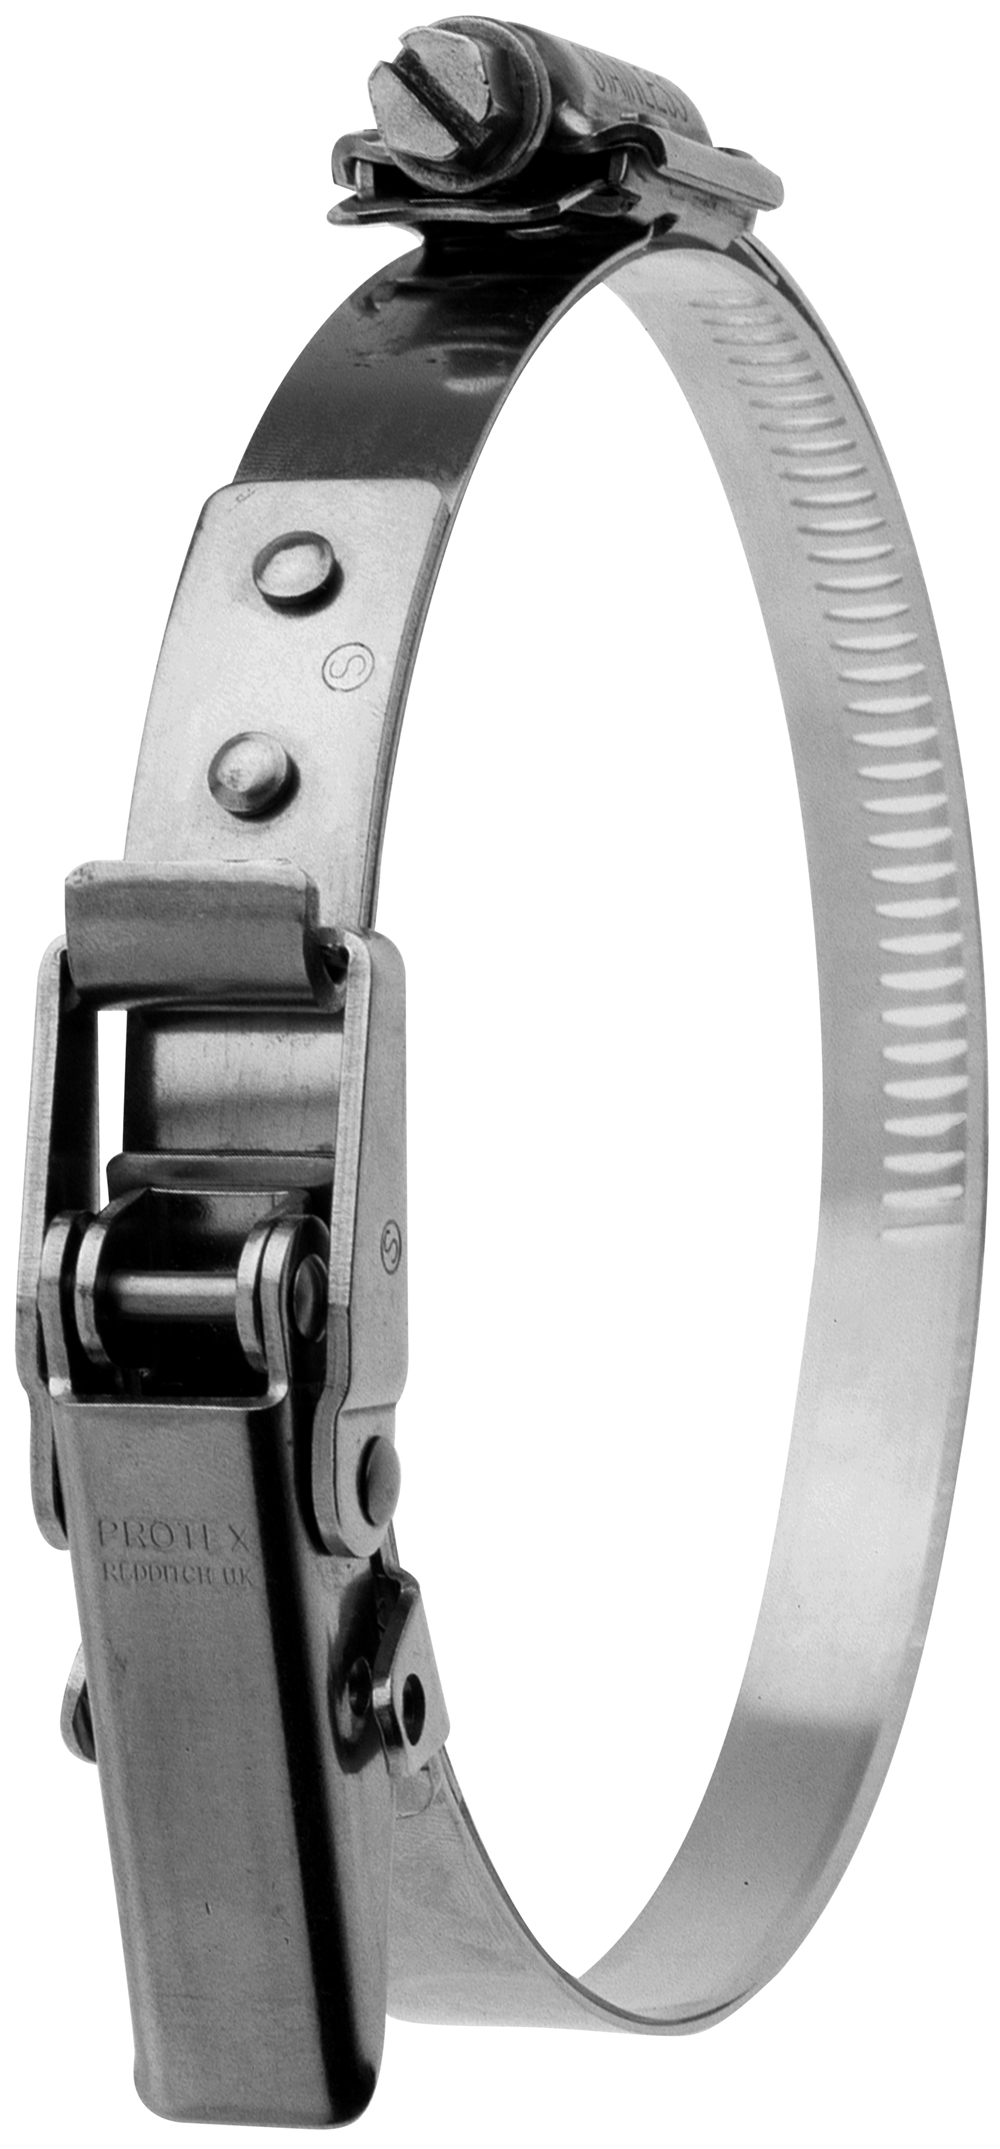 250-295mm Diameter Hi-Torque  Rigid Claw Stainless Steel Quick Release Bandclamp (Natural)